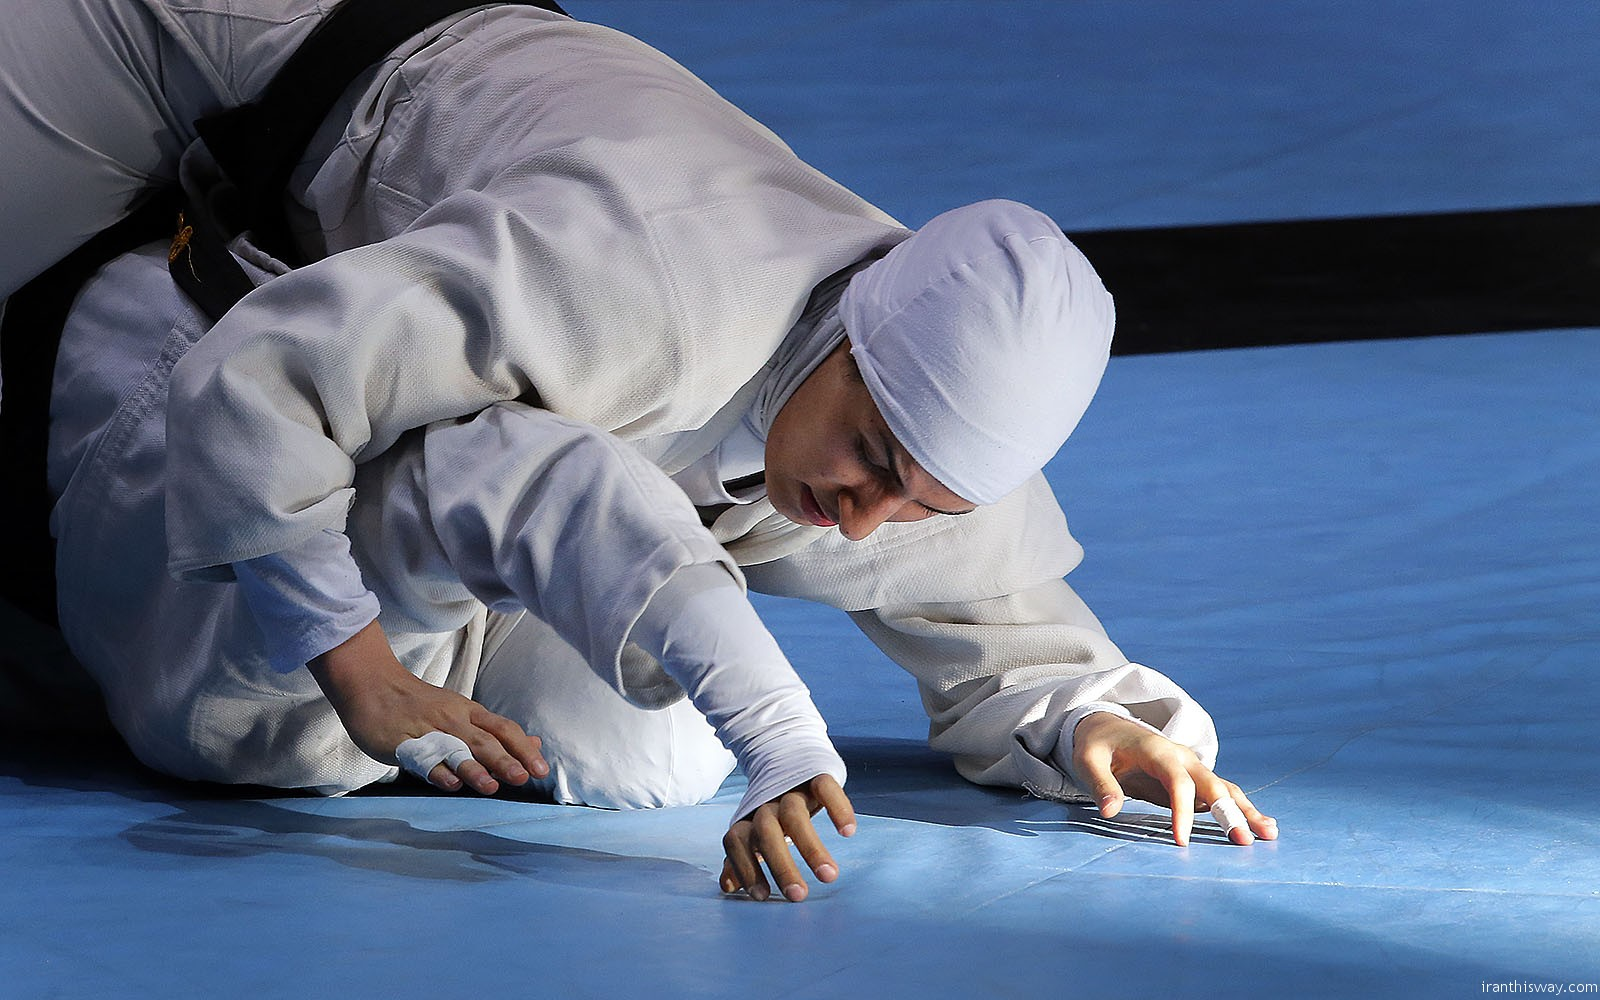 Iranian girls training grappling wrestling-Photo